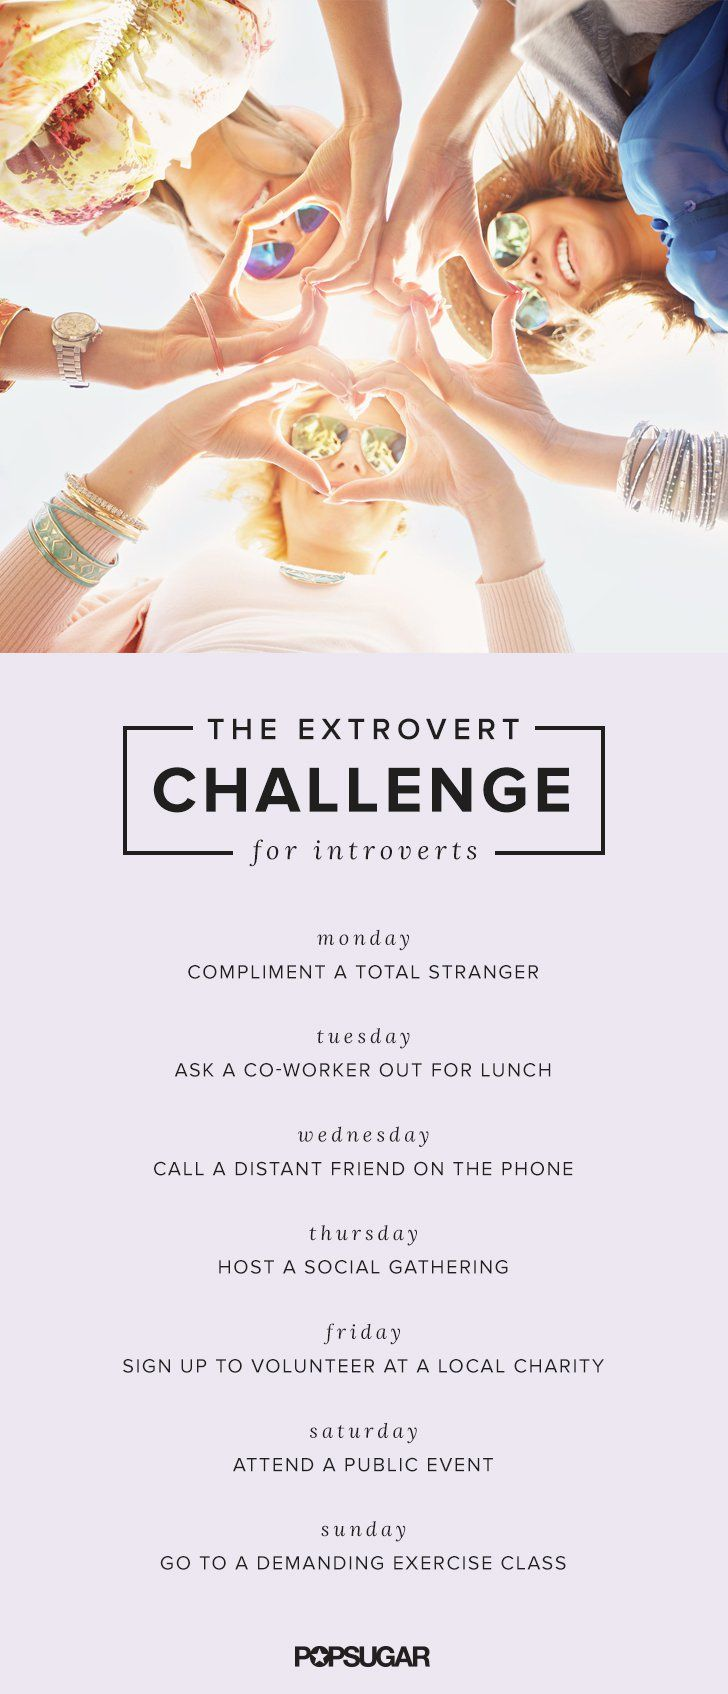 Pin for Later: This 7-Day Extrovert Challenge Will Help You Overcome Social Anxiety